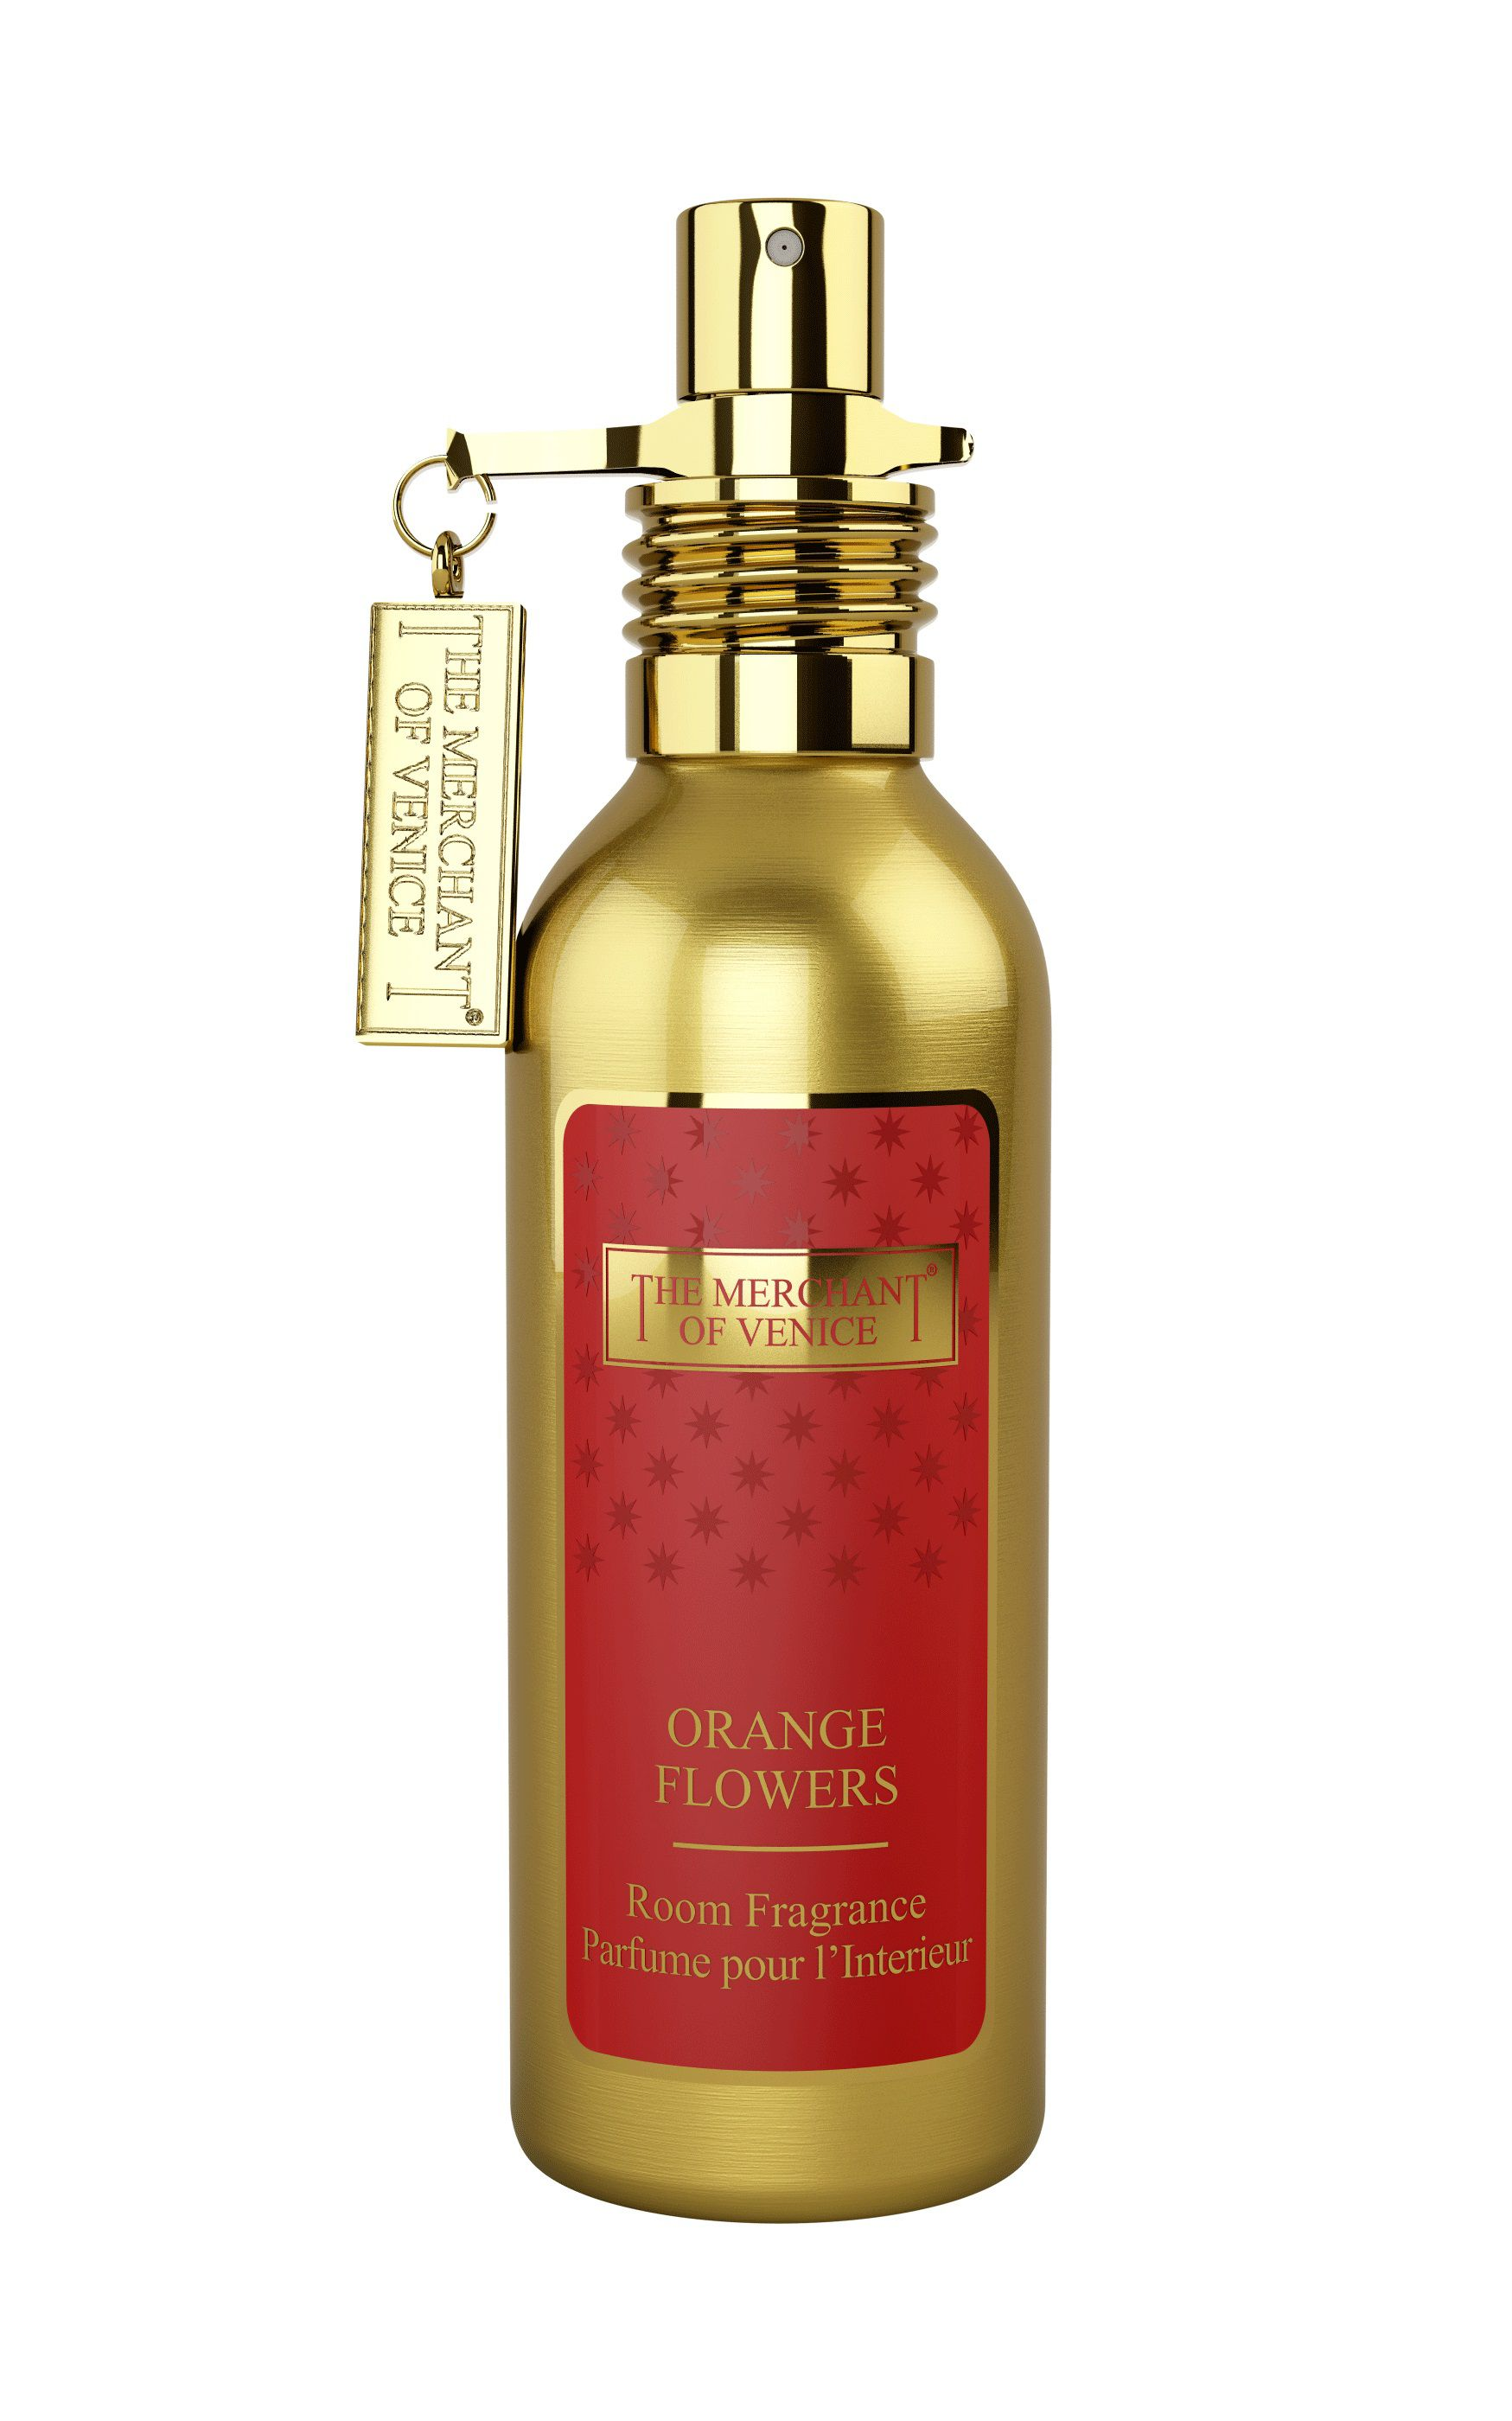 The Merchant Of Venice The Merchant Of Venice Orange Flowers Natural Home Spray 100ml